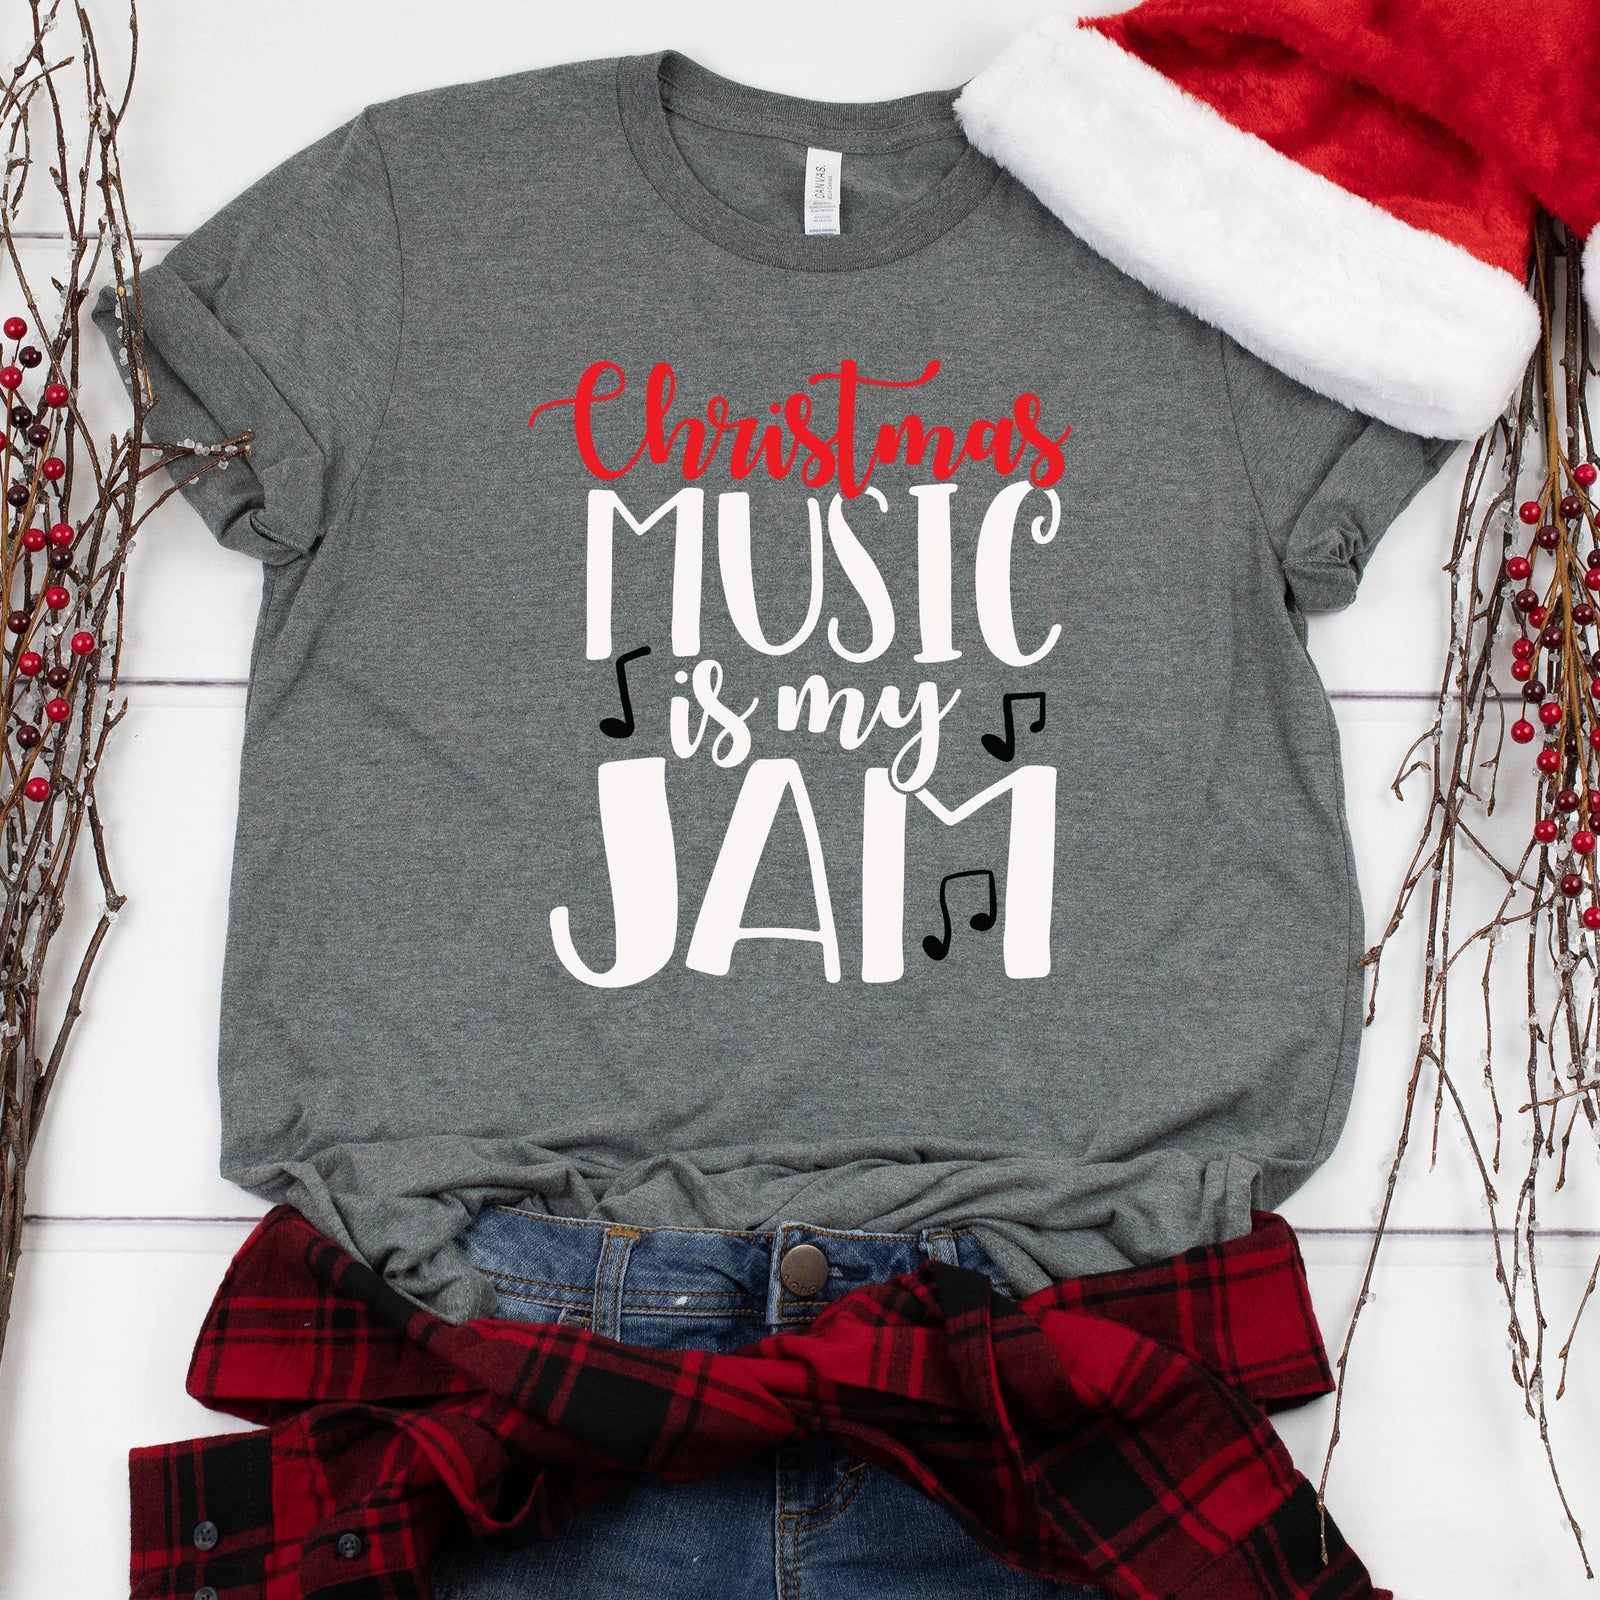 Christmas Music is My Jam Unisex T Shirt - Funny X-Mas Couple Shirt - Believe in the Spirit of Christmas